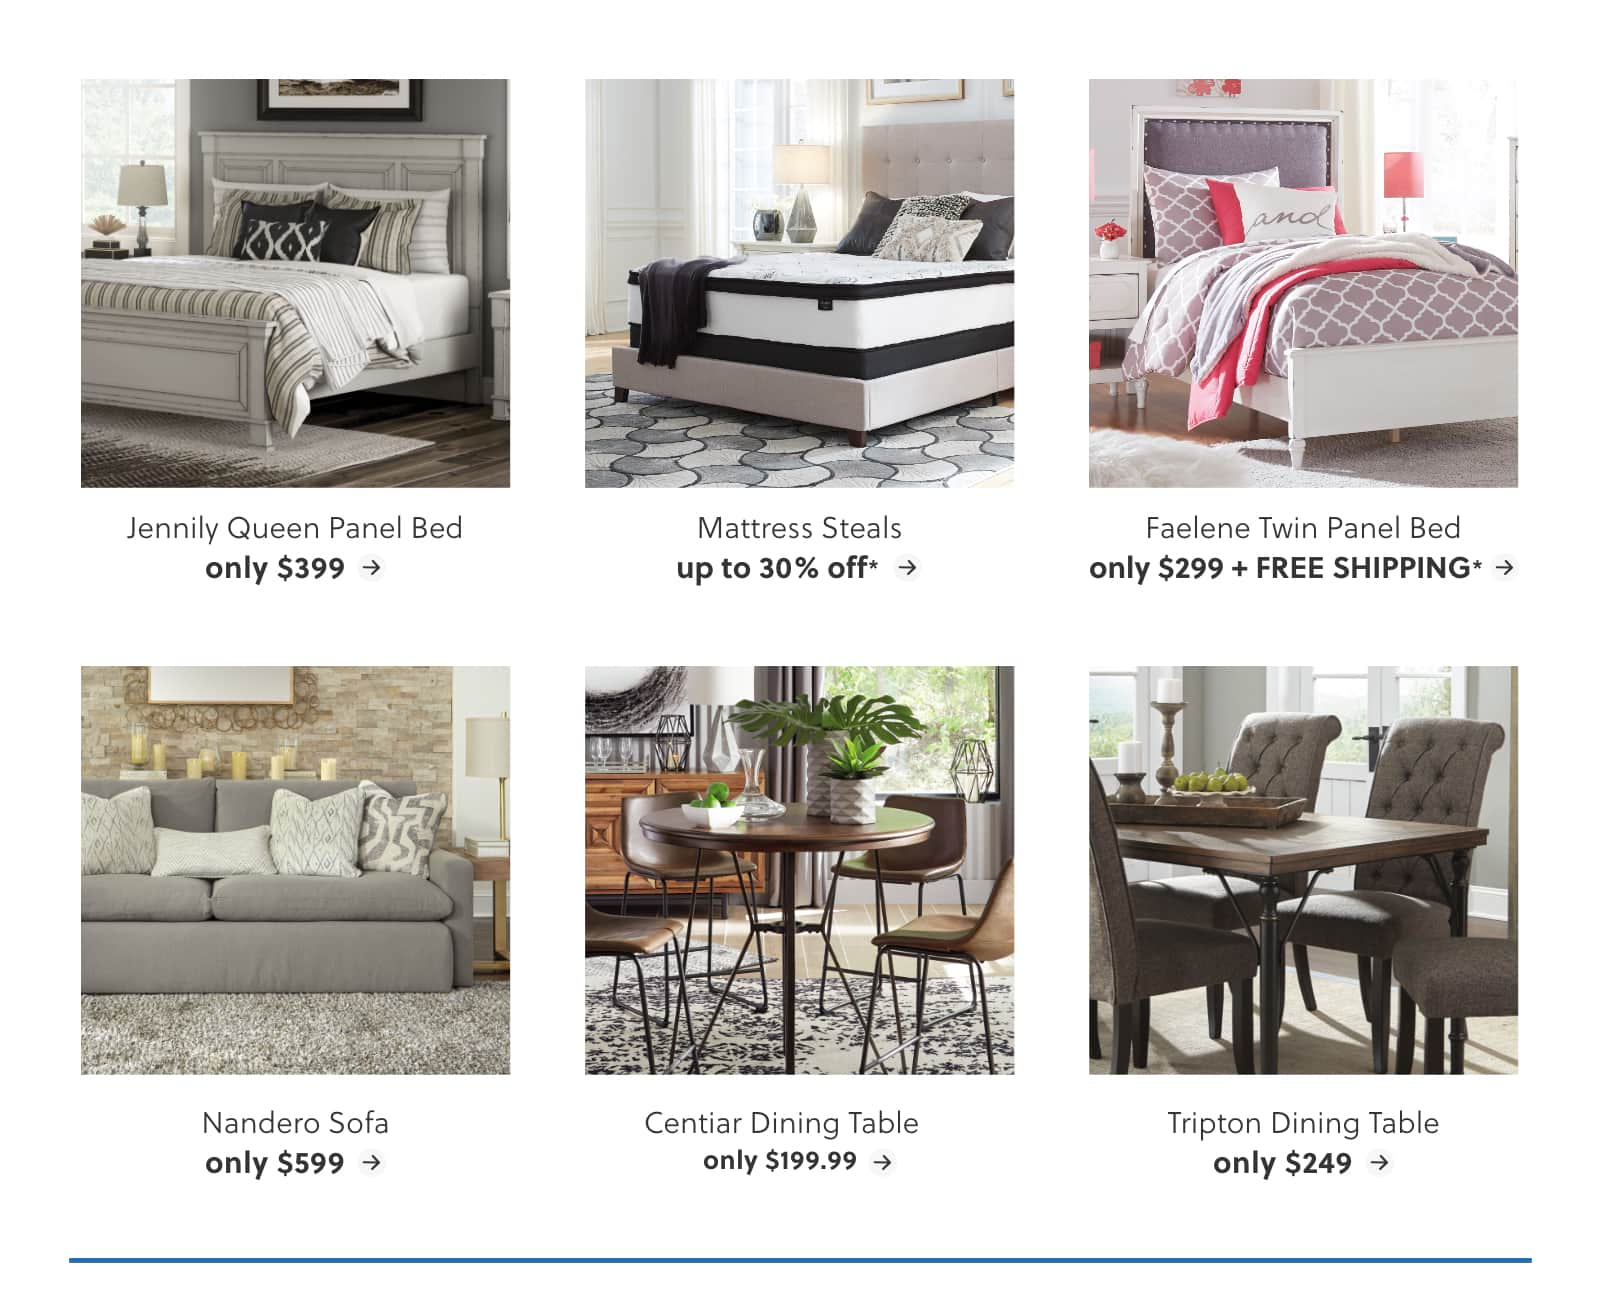 Jennily Queen Panel Bed, Mattress Steals, Faelene Twin Panel Bed, Nandero Sofa, Centiar Dining Table, Tripton Dining Table